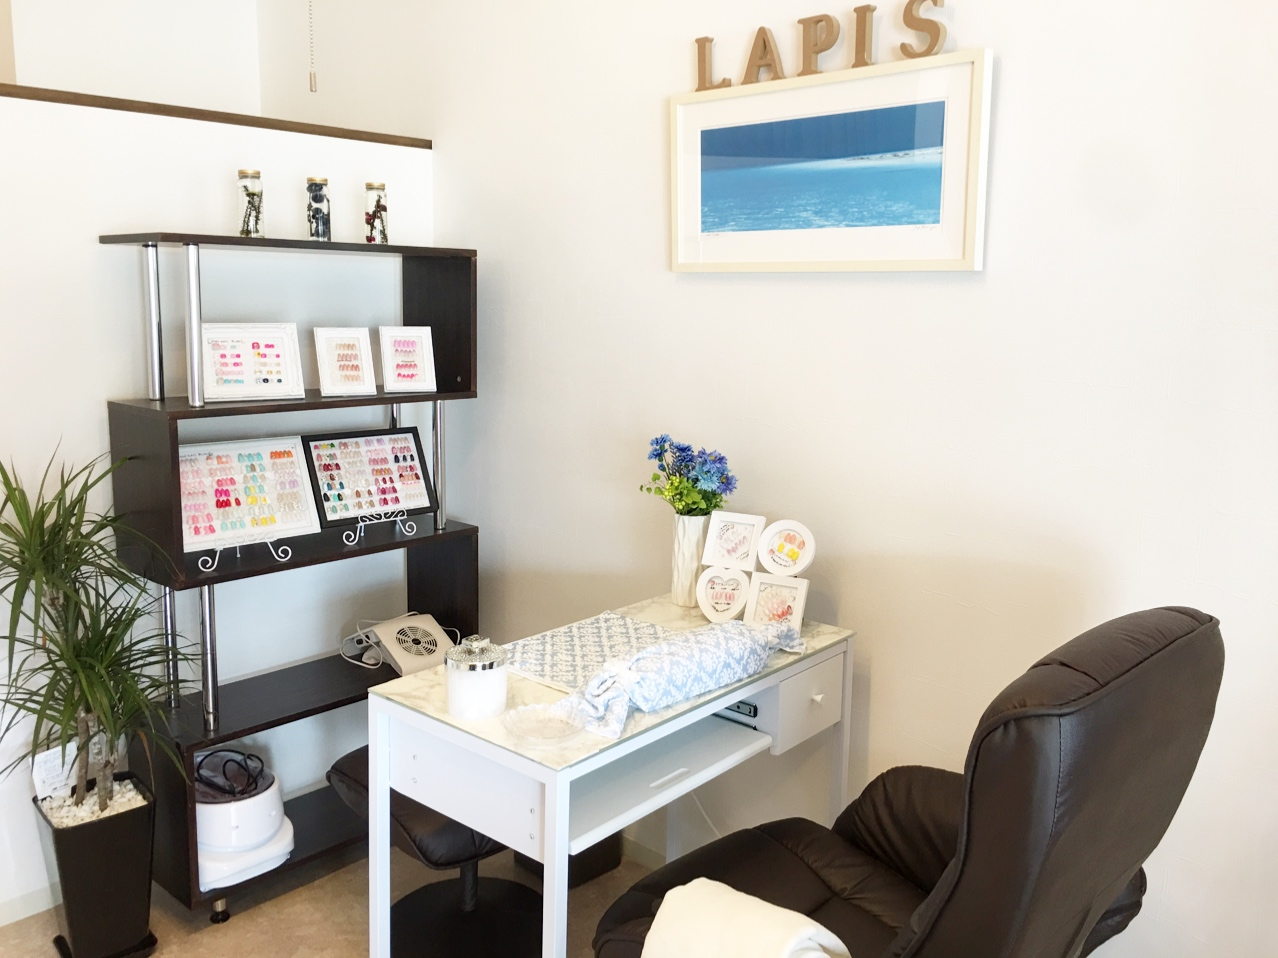 Beauty Salon Lapis店舗写真2